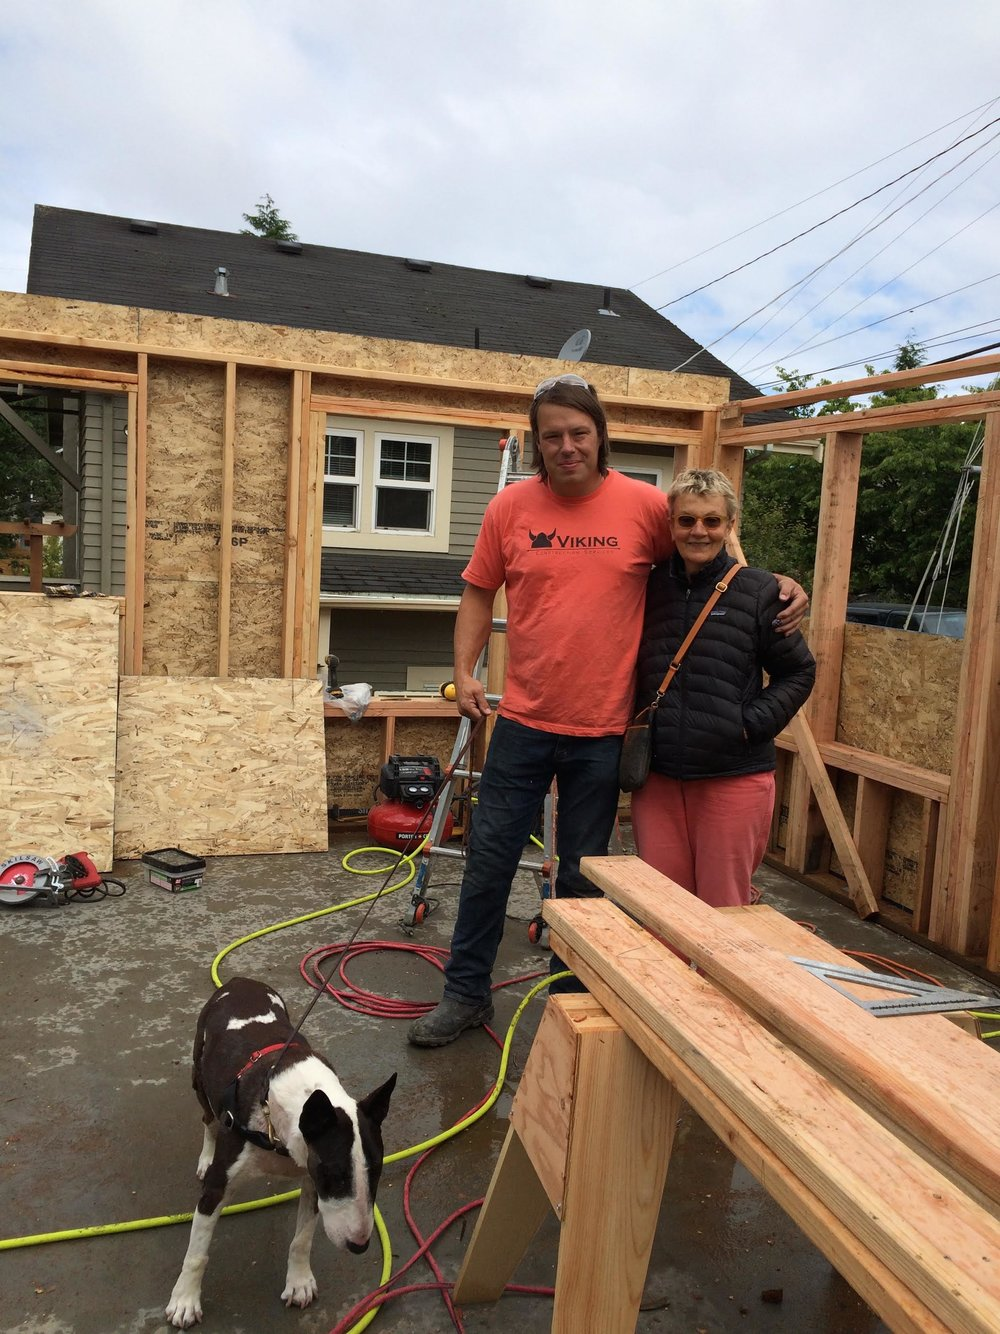 Scout, Elyse, and Joe of Viking Construction last summer.